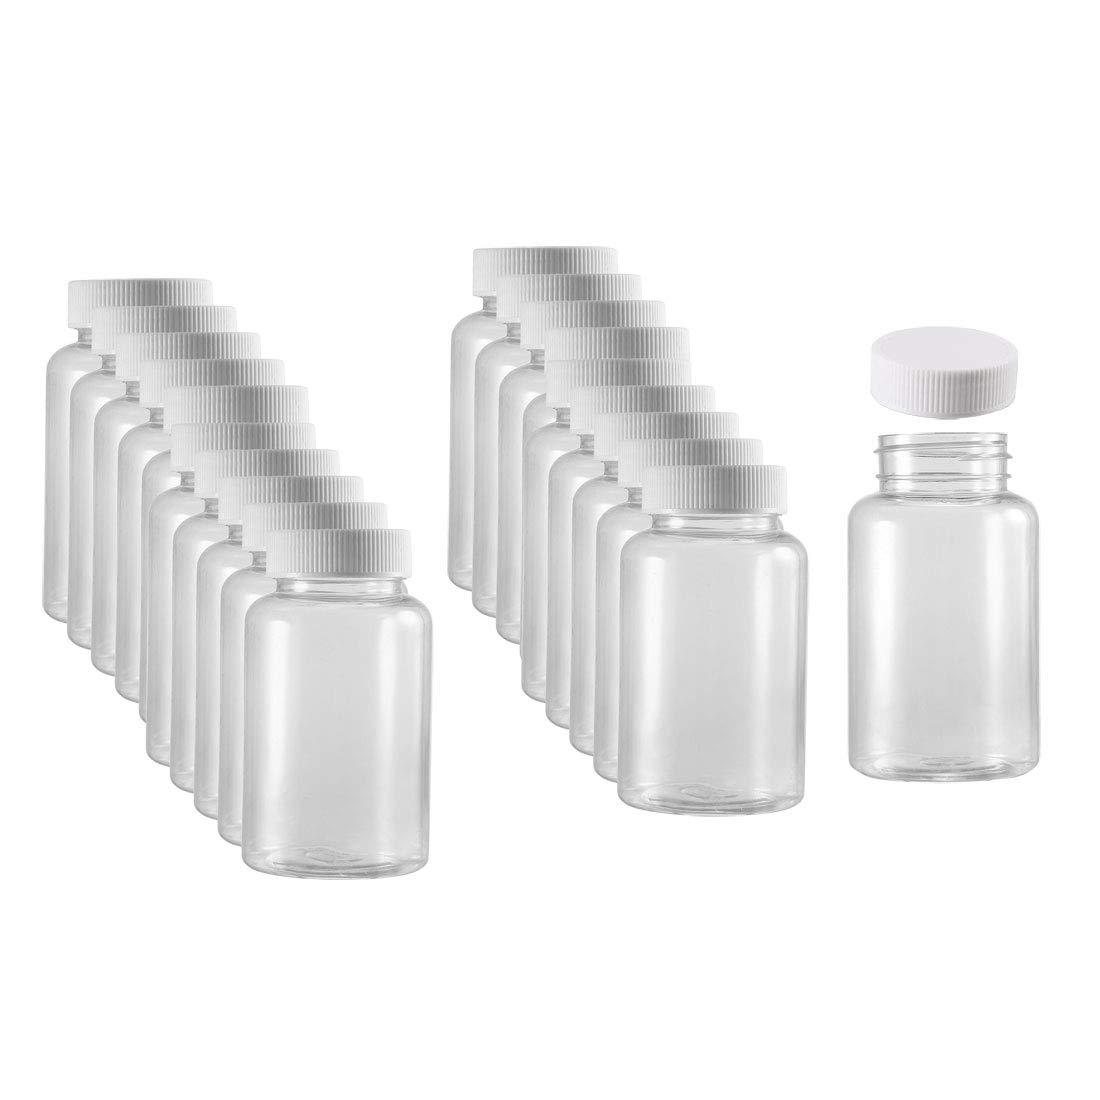 uxcell Plastic Lab Chemical Reagent Bottle 200ml/6.8oz Wide Mouth Sample Sealing Liquid Storage Container 20pcs by uxcell